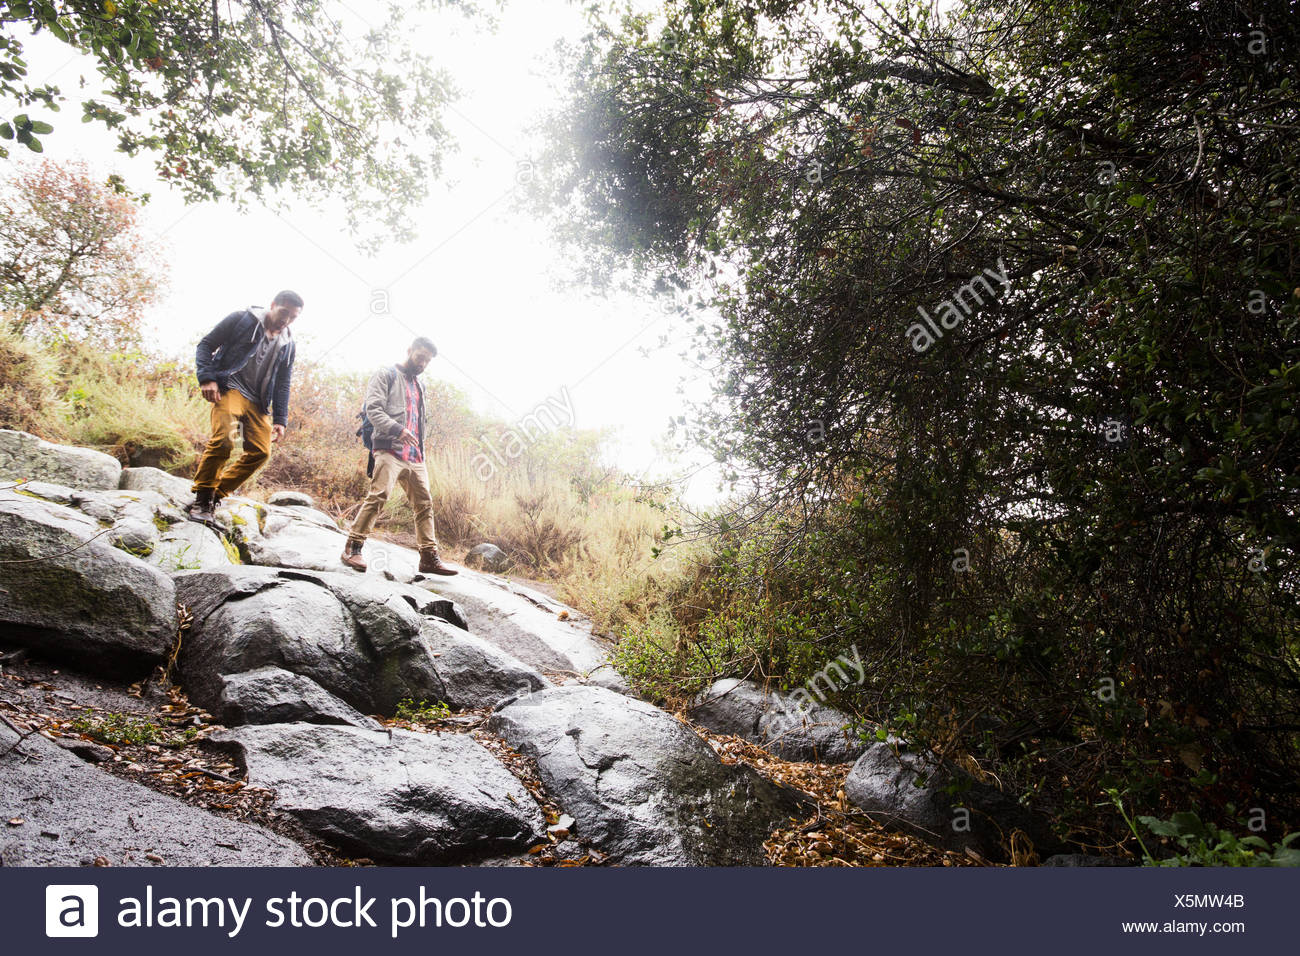 Two young men carrying backpacks hiking - Stock Image